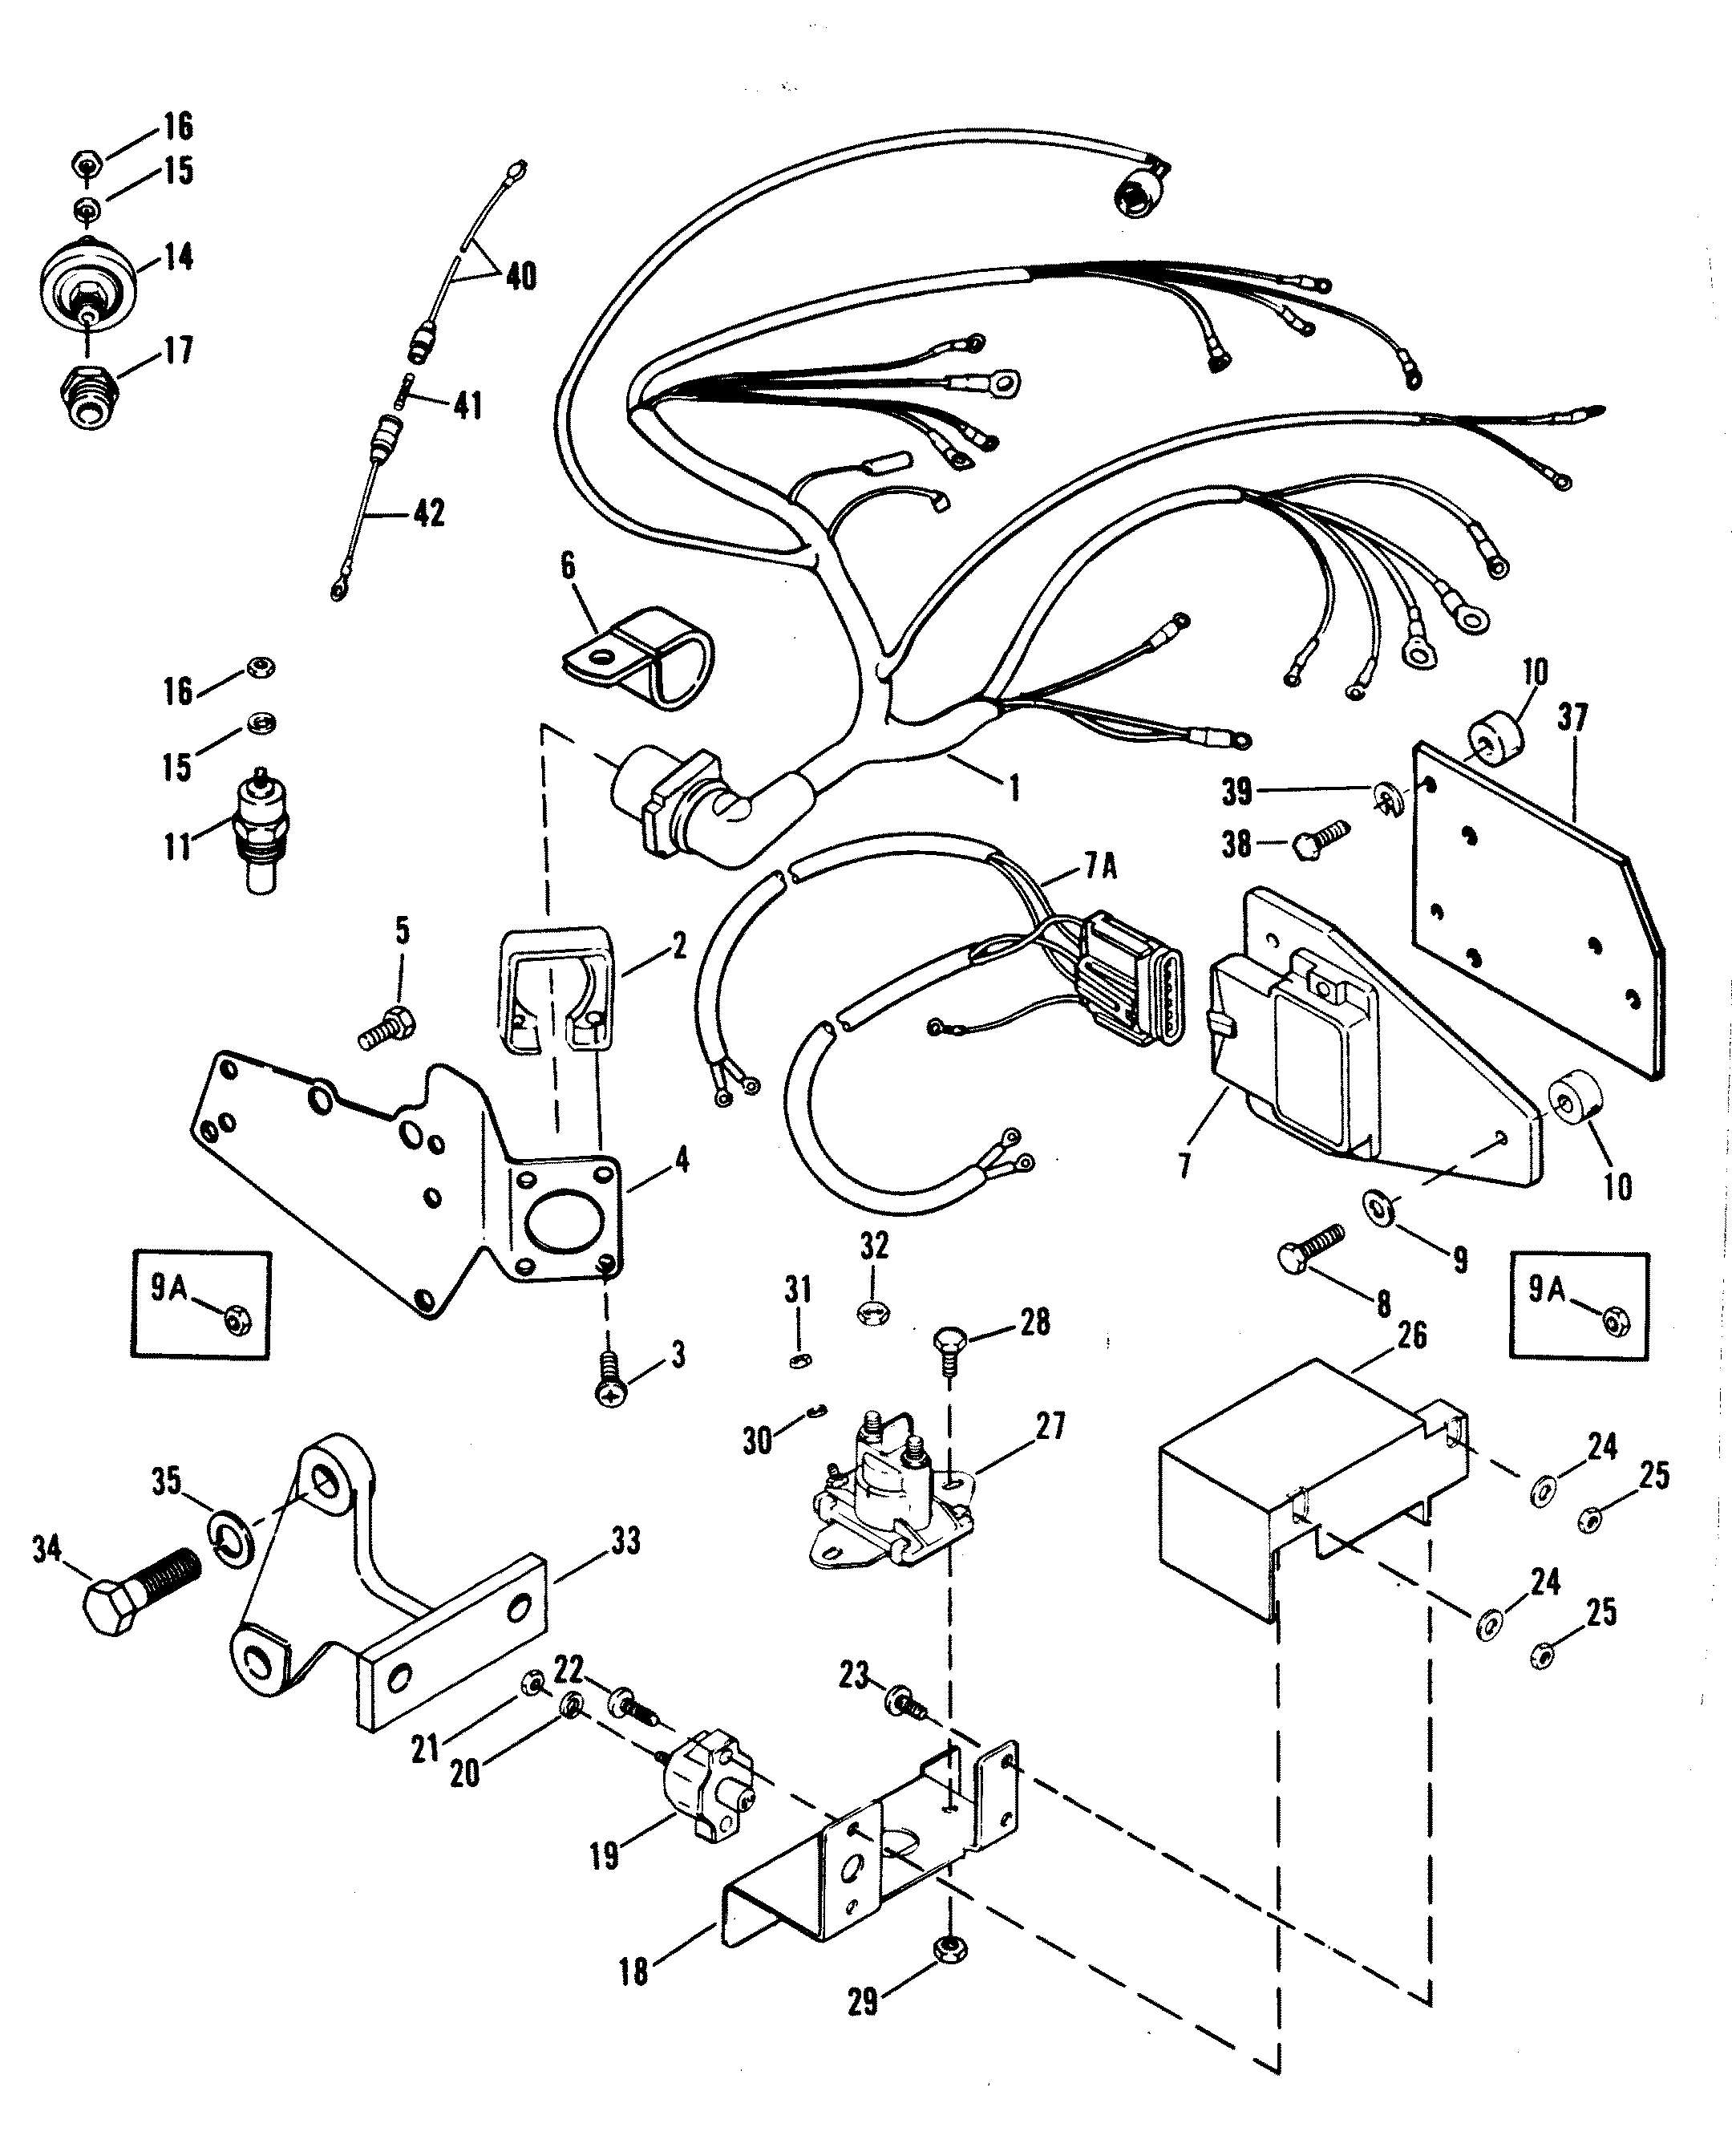 mercruiser wireing harness   26 wiring diagram images